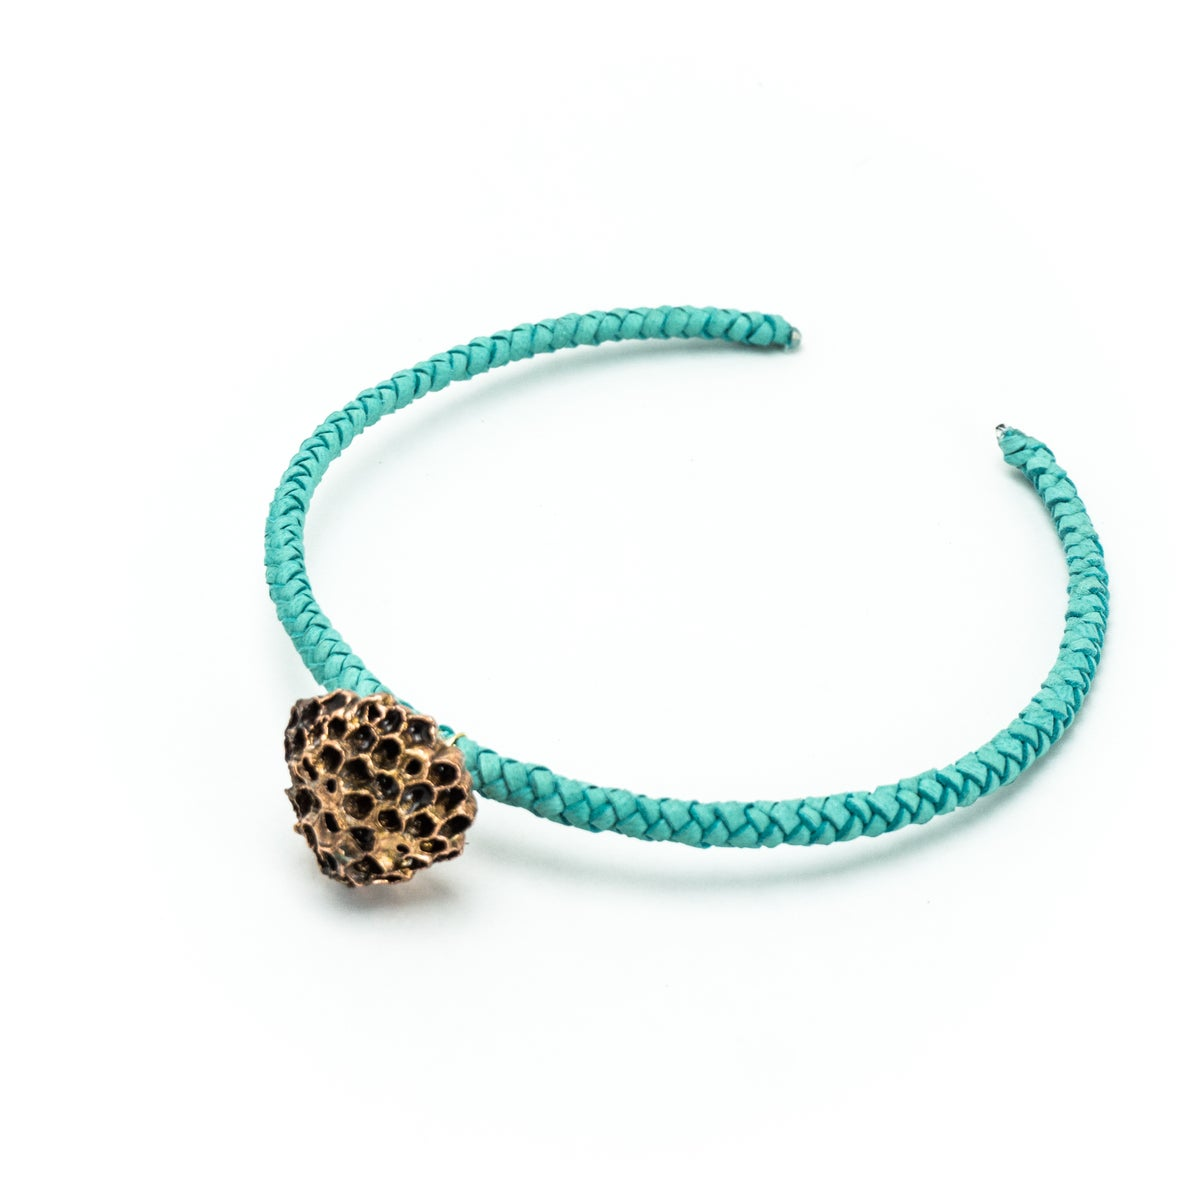 Image of Turquoise Leather Wasp Nest Choker